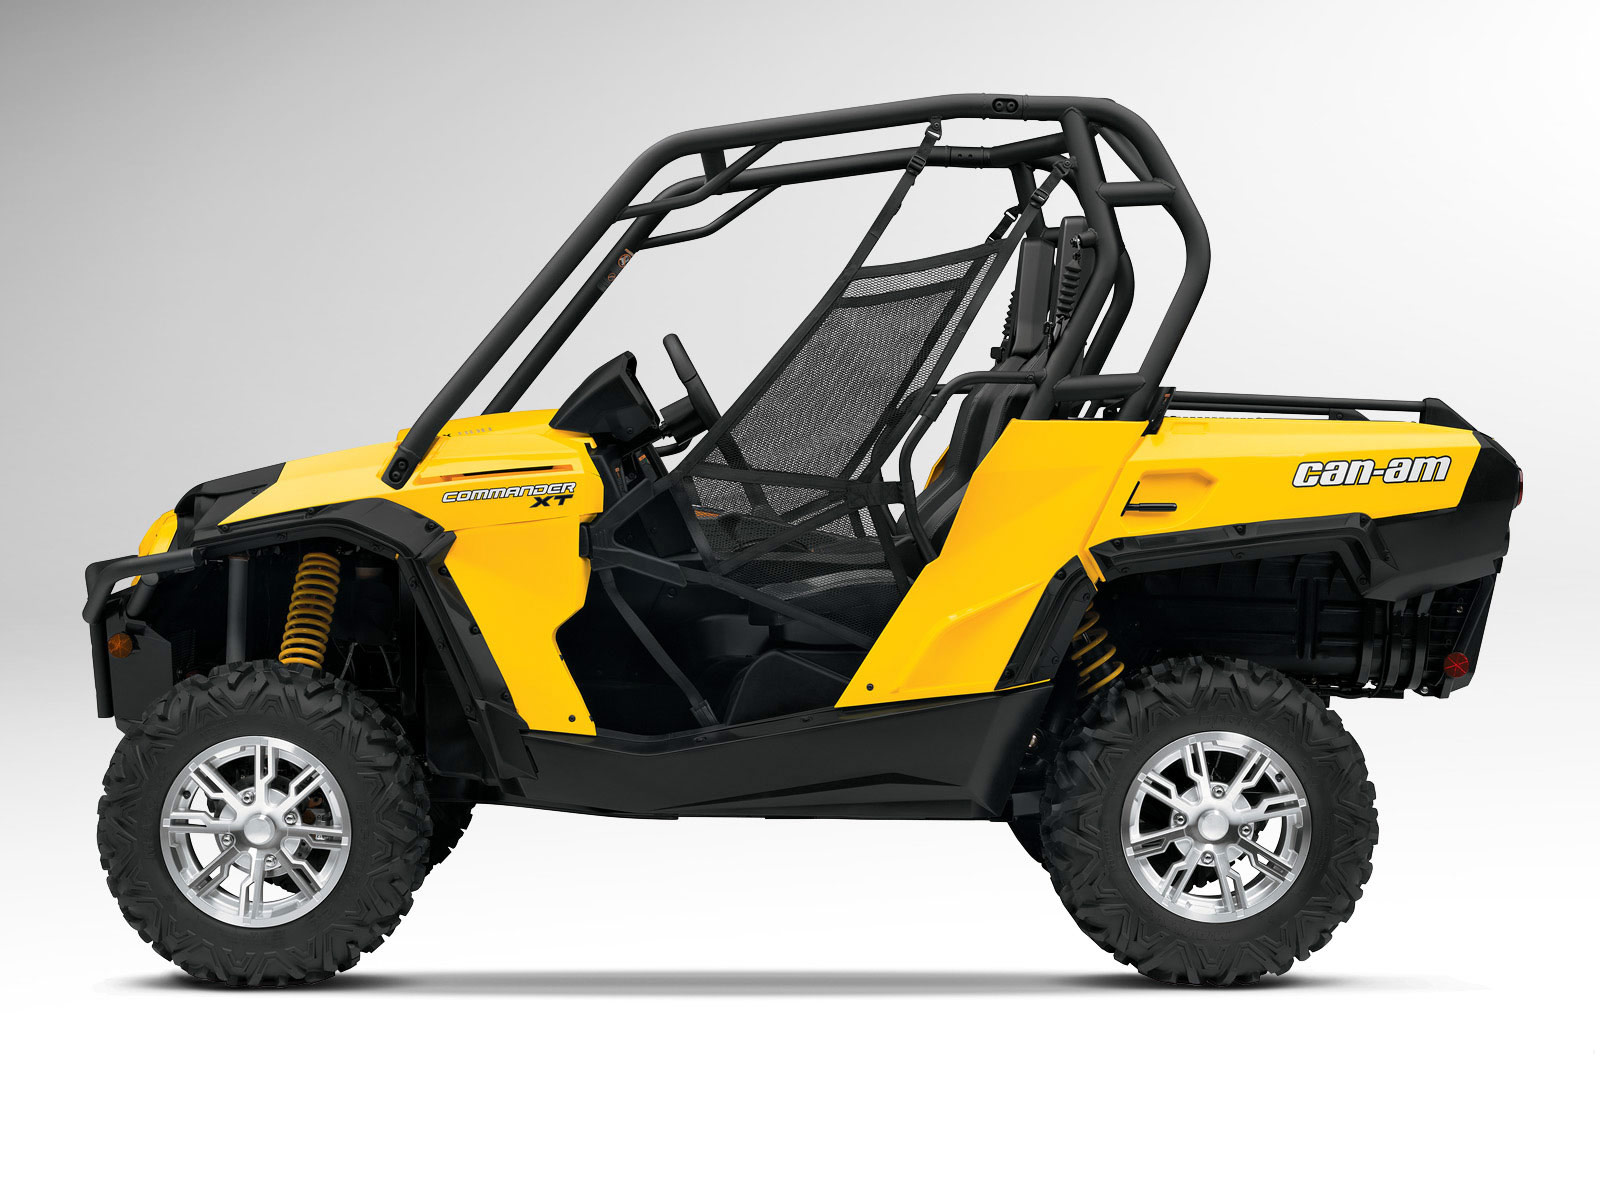 2012 Can-Am Commander 800R XT ATV pictures 2